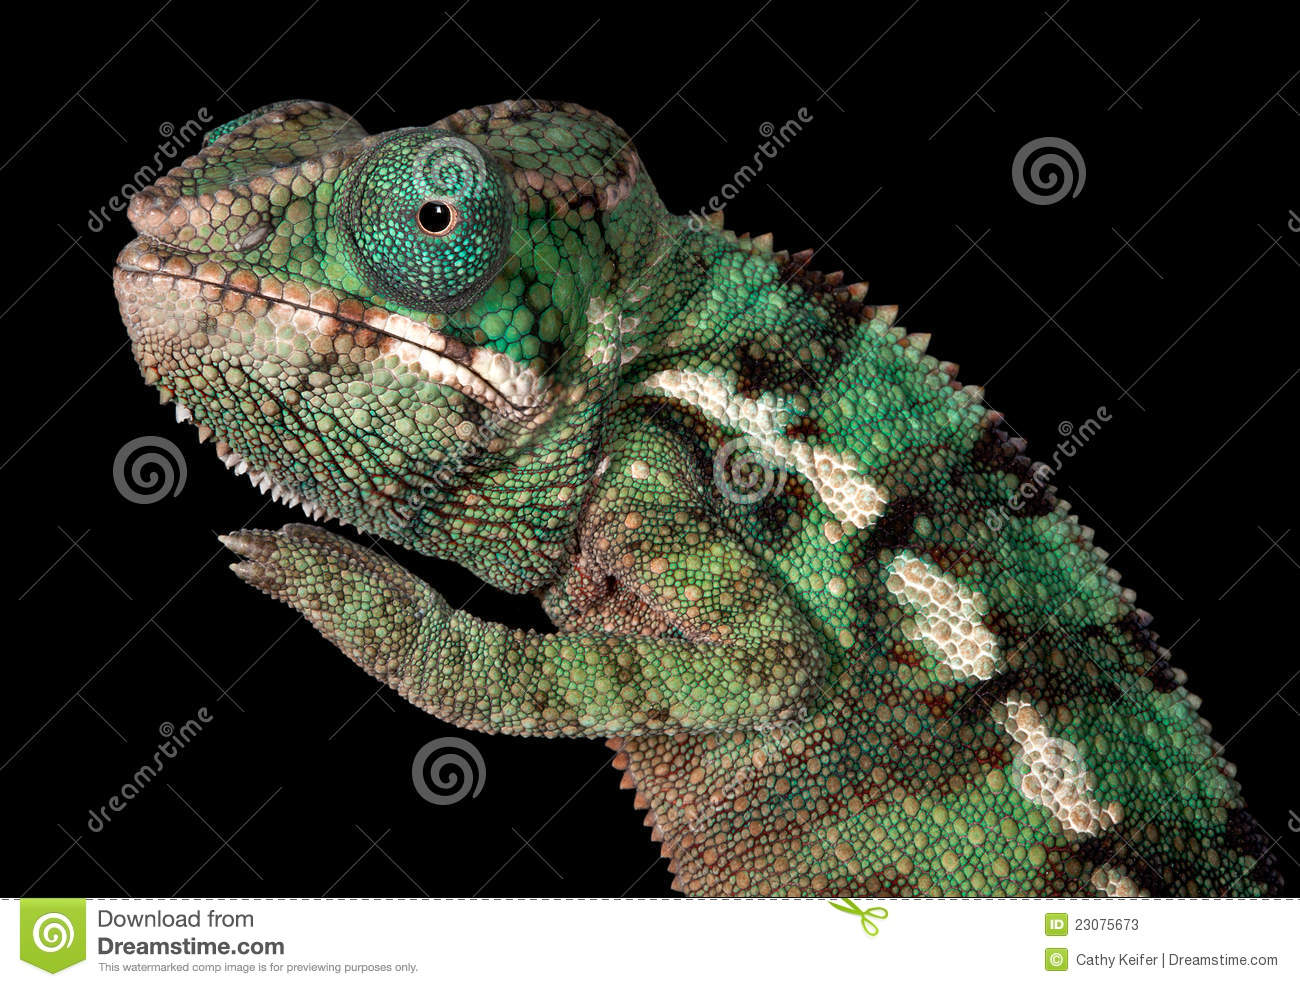 baby Ambilobe Panther Chameleon is posing for a portrait Baby Ambilobe Panther Chameleon